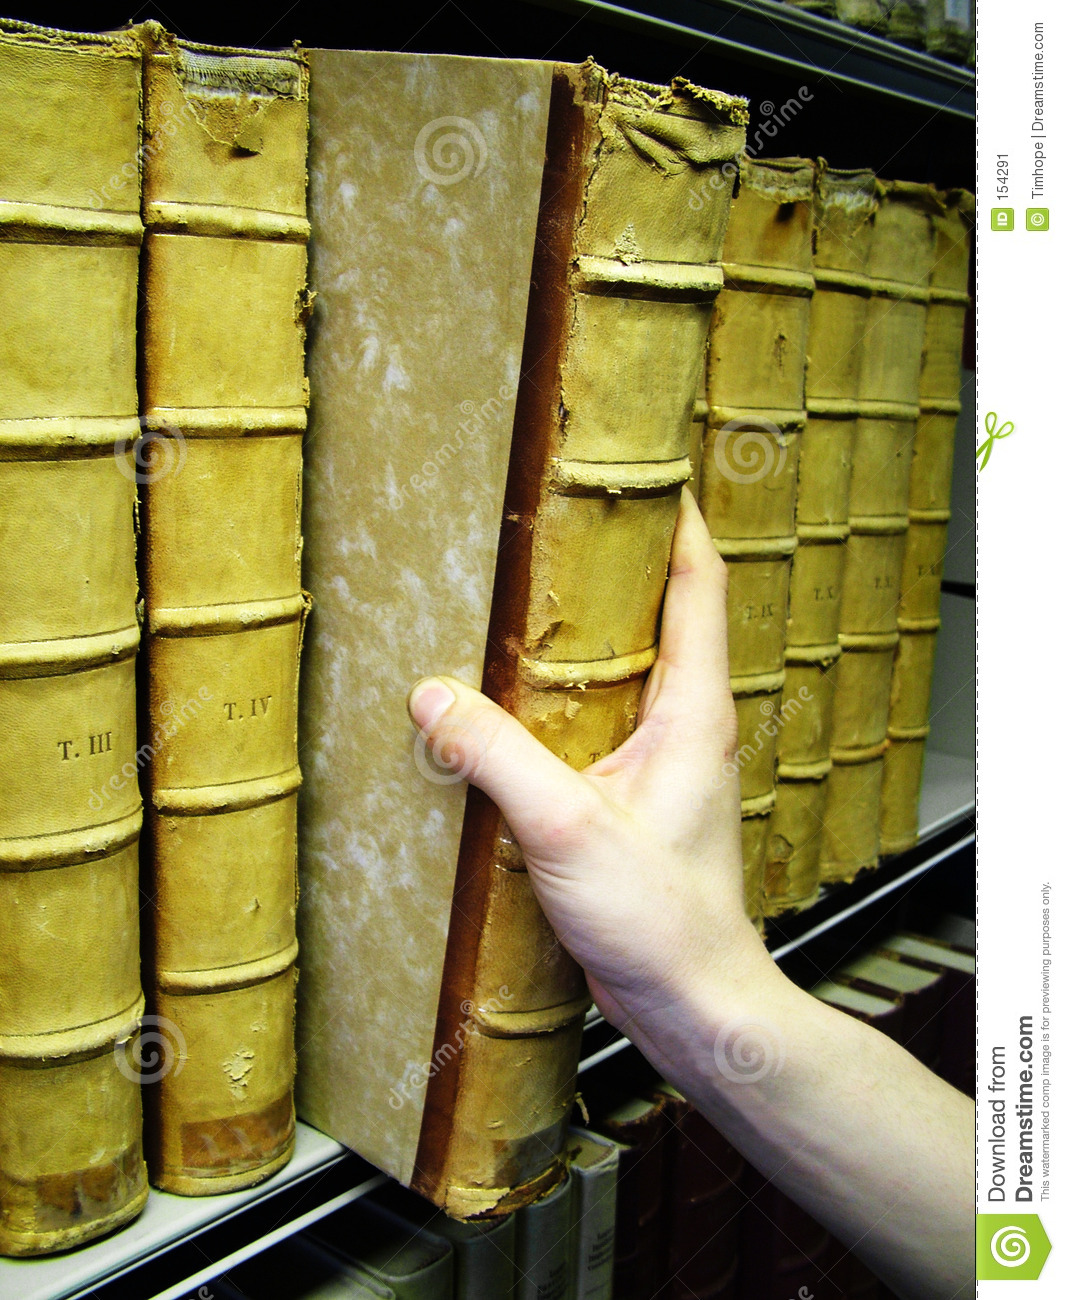 Persons Hand Removing Old Book From Bookshelf Download Preview